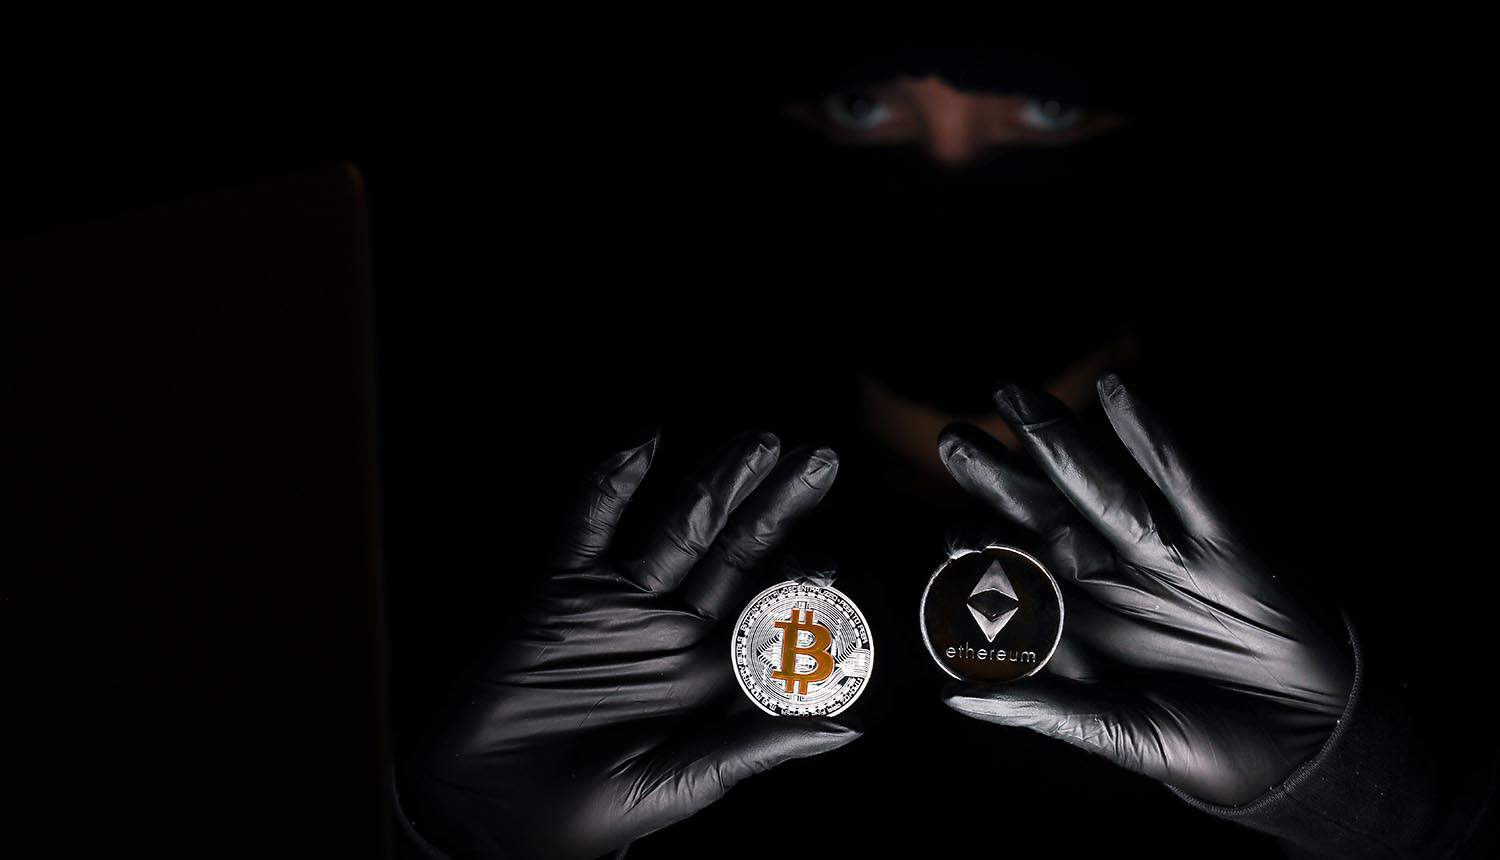 Hacker holding crypto showing crypto exchange sanctioned for ransomware payments